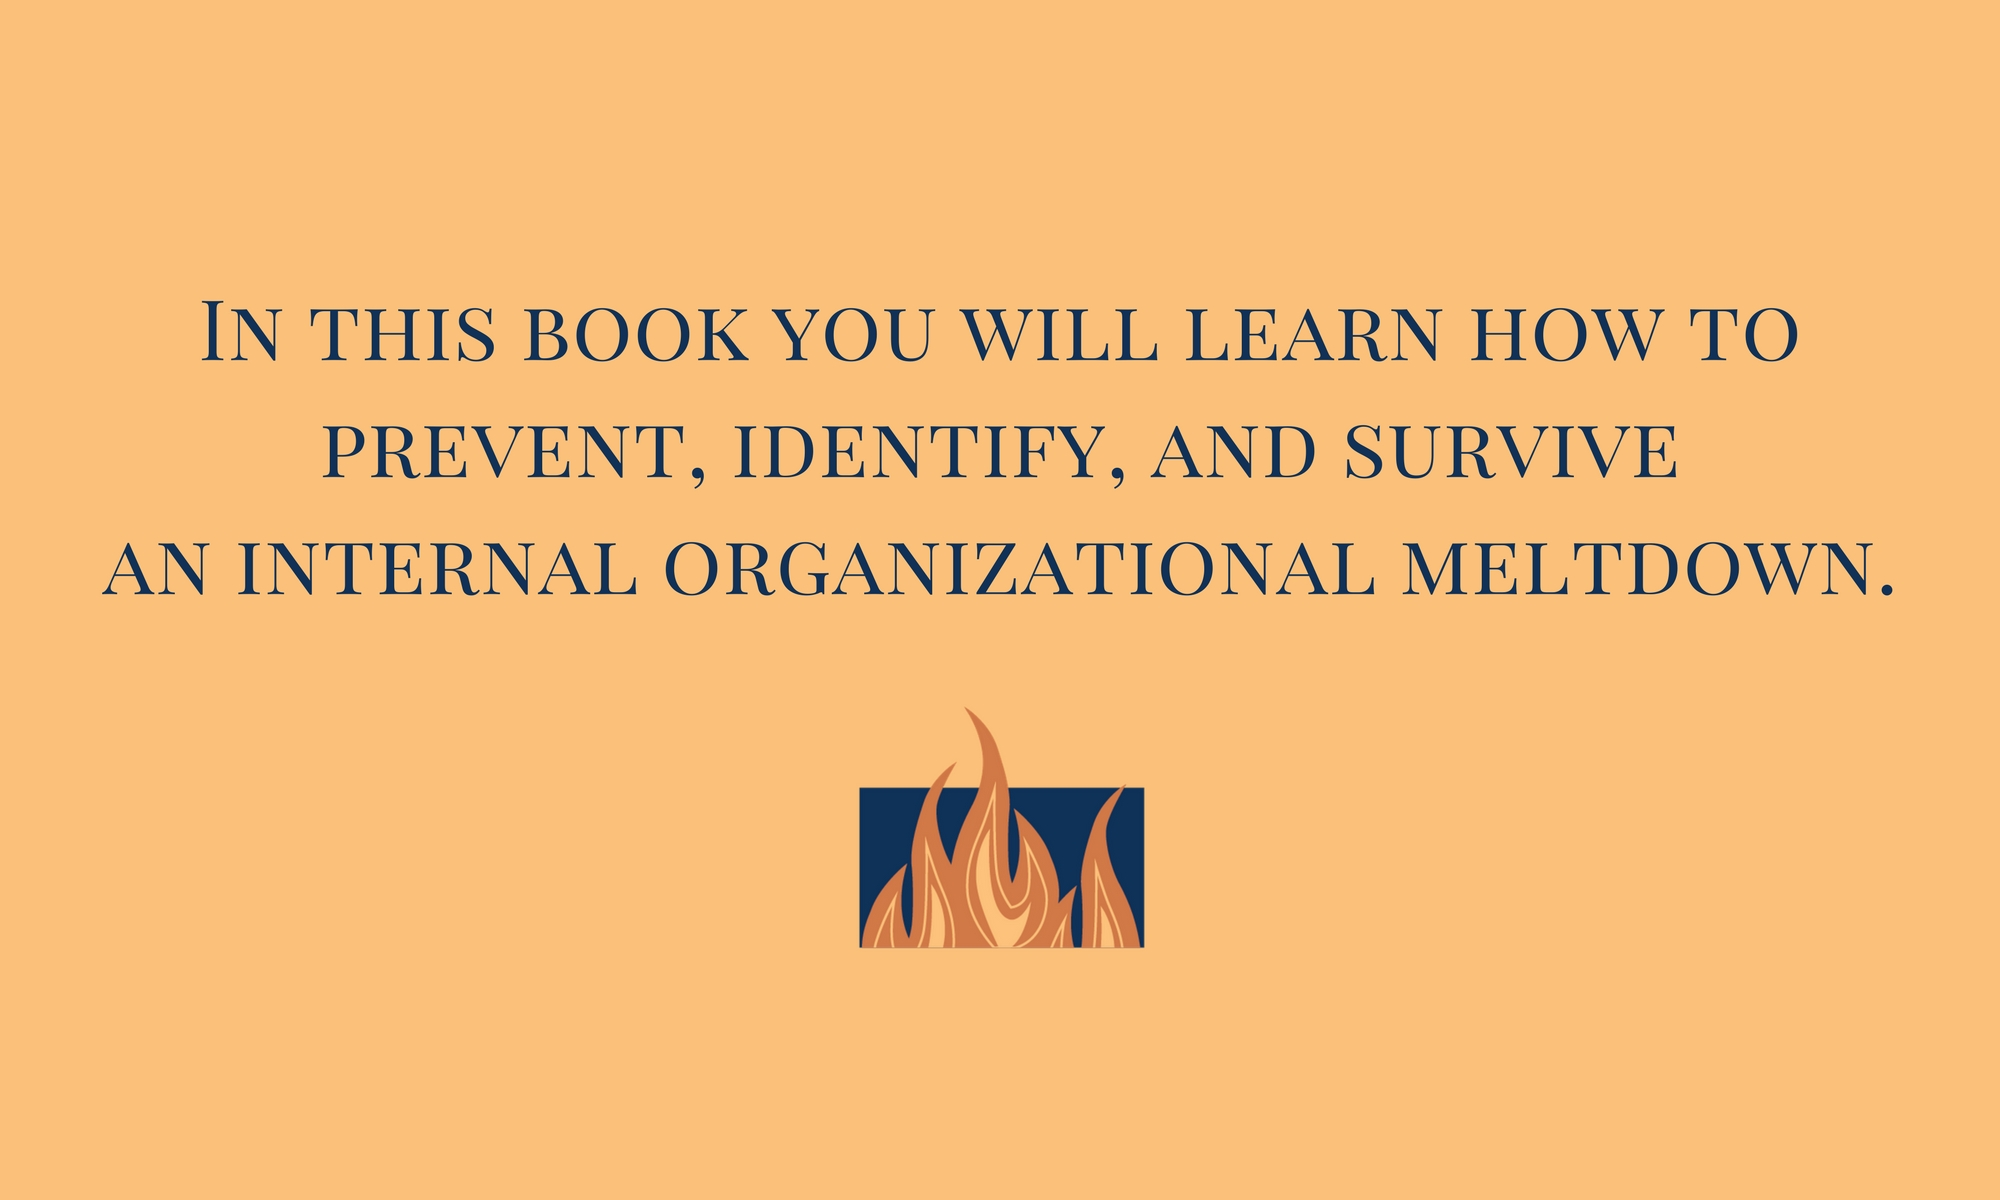 This book will teach you how to prevent, identify, and survive an internal organizational meltdown.